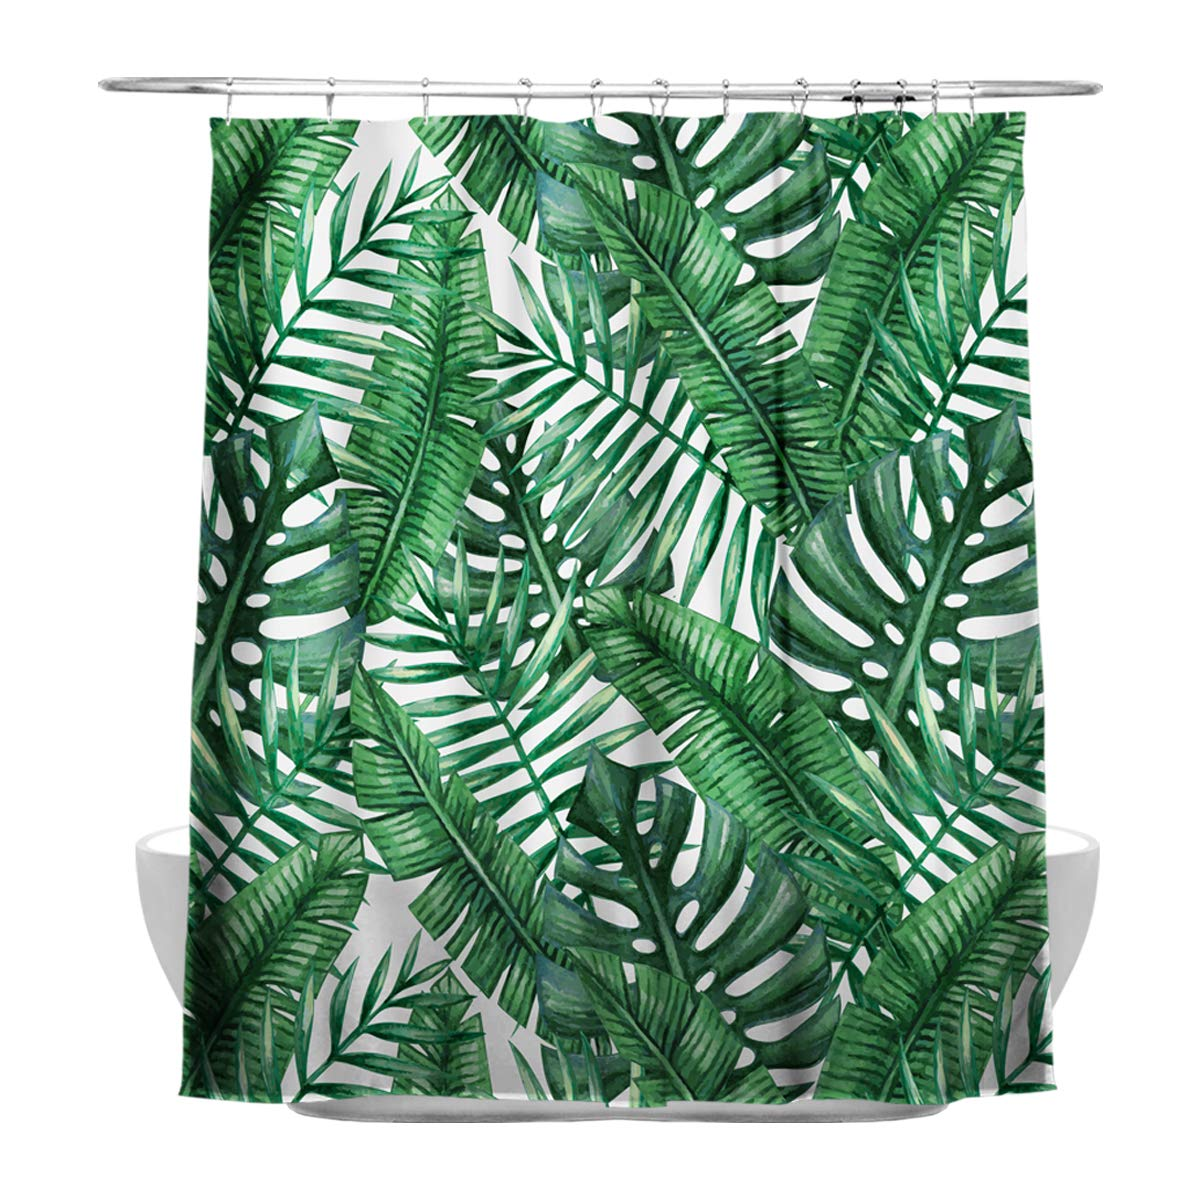 Blue Green Broadleaf Palm leaves Shower Curtain, High-quality Polyester Fabric Waterproof, With 12 Bathroom Curtain Rings Colour Kingdom